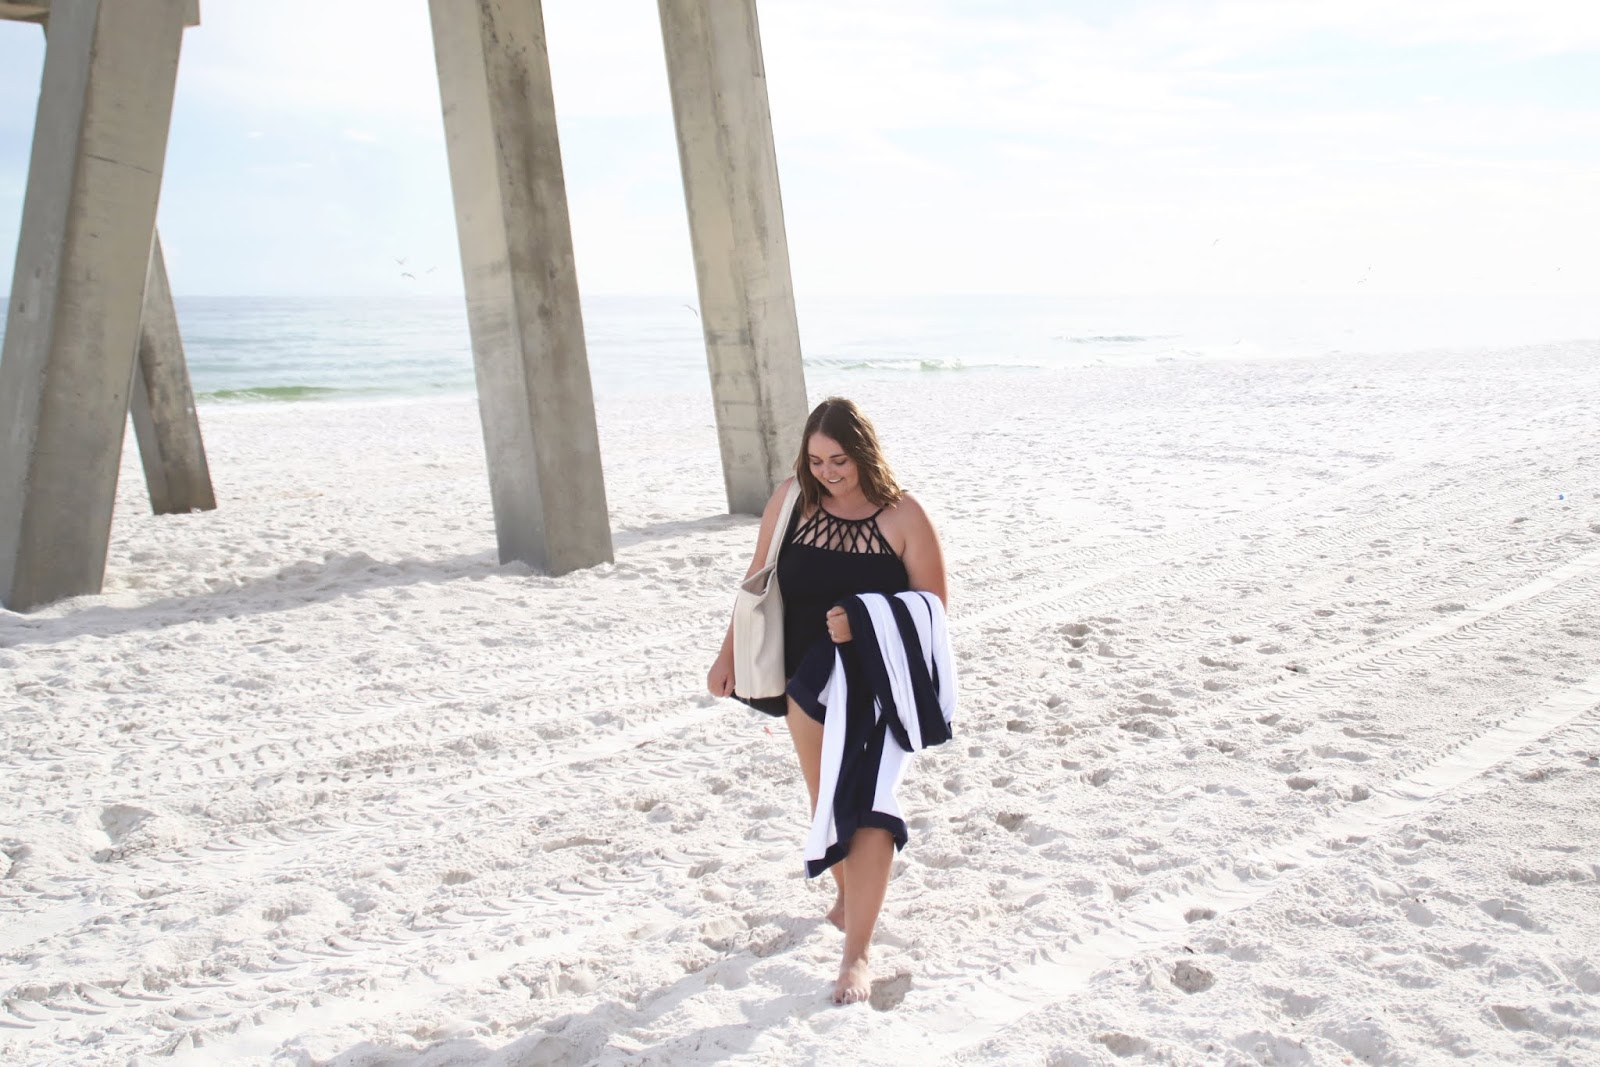 Navarre Florida, Navarre Fishing Pier, Swimsuit Guide, Swimsuit Roundup, College Spring Break, Spring Break Swimsuits